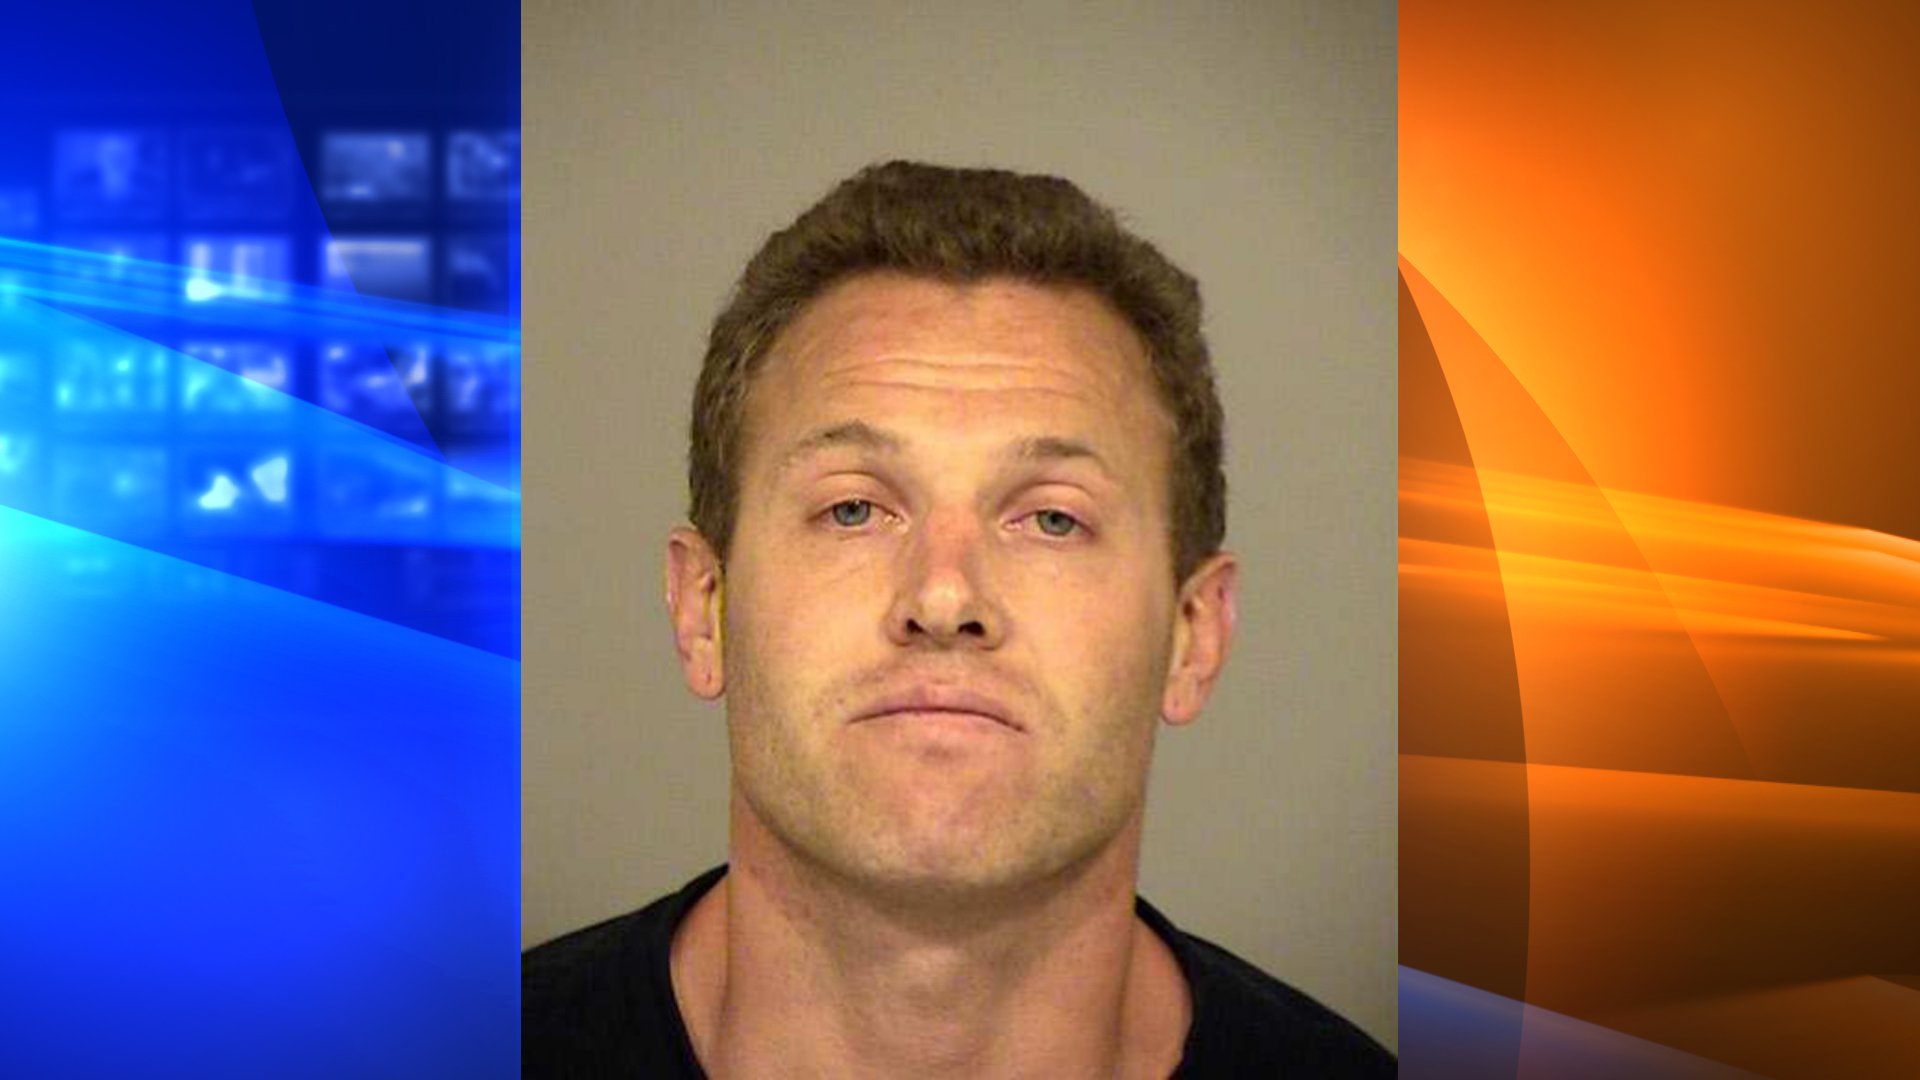 Matthew Rey Scott is shown in a photo released by the Simi Valley Police Department on July 12, 2020.